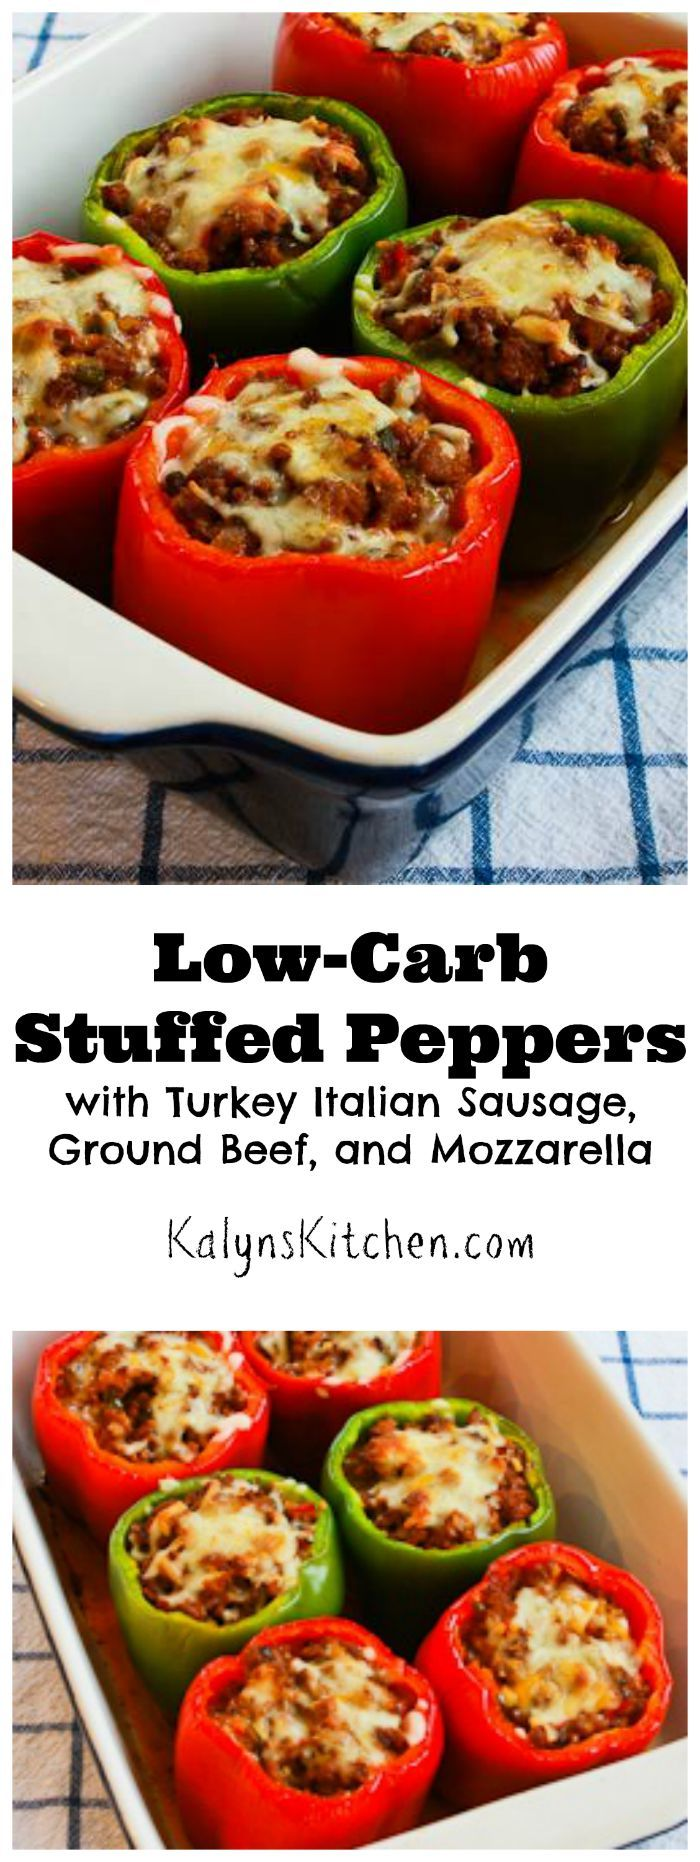 Low Carb Stuffed Peppers With Italian Sausage Ground Beef And Mozzarella Recipe Beef Recipes Low Carb Stuffed Peppers Food Recipes